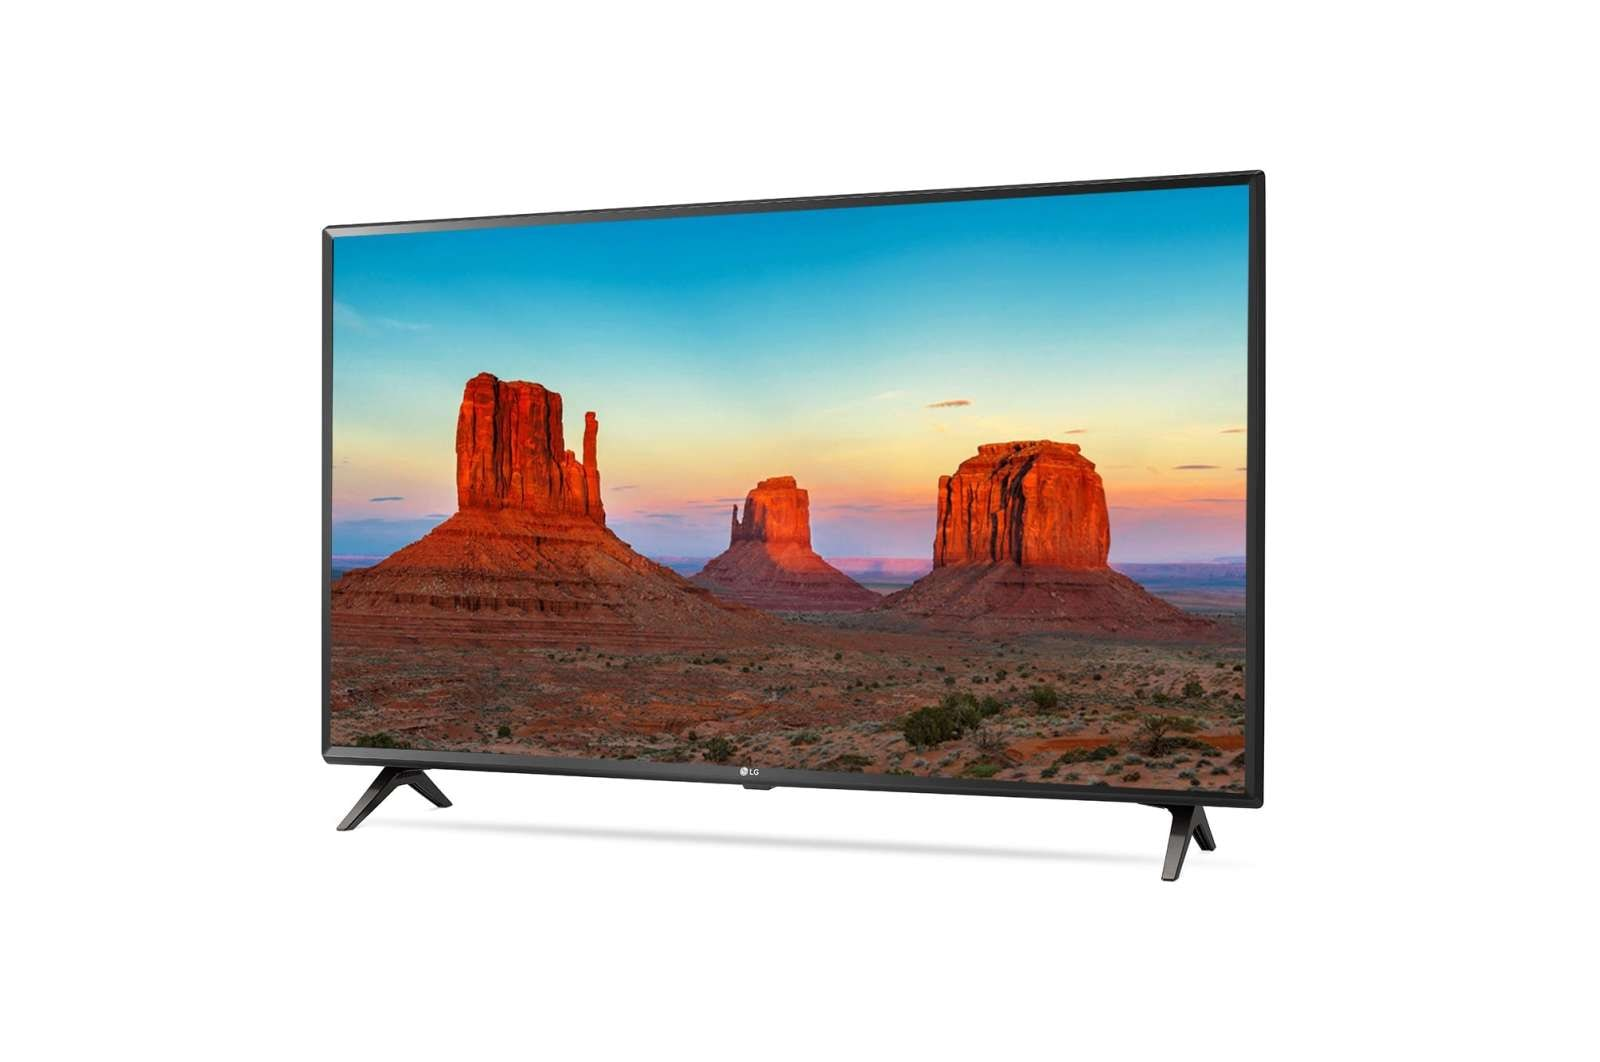 LG 49 Inches Ultra HD LED Smart TV (49UK6360PTE, Black)